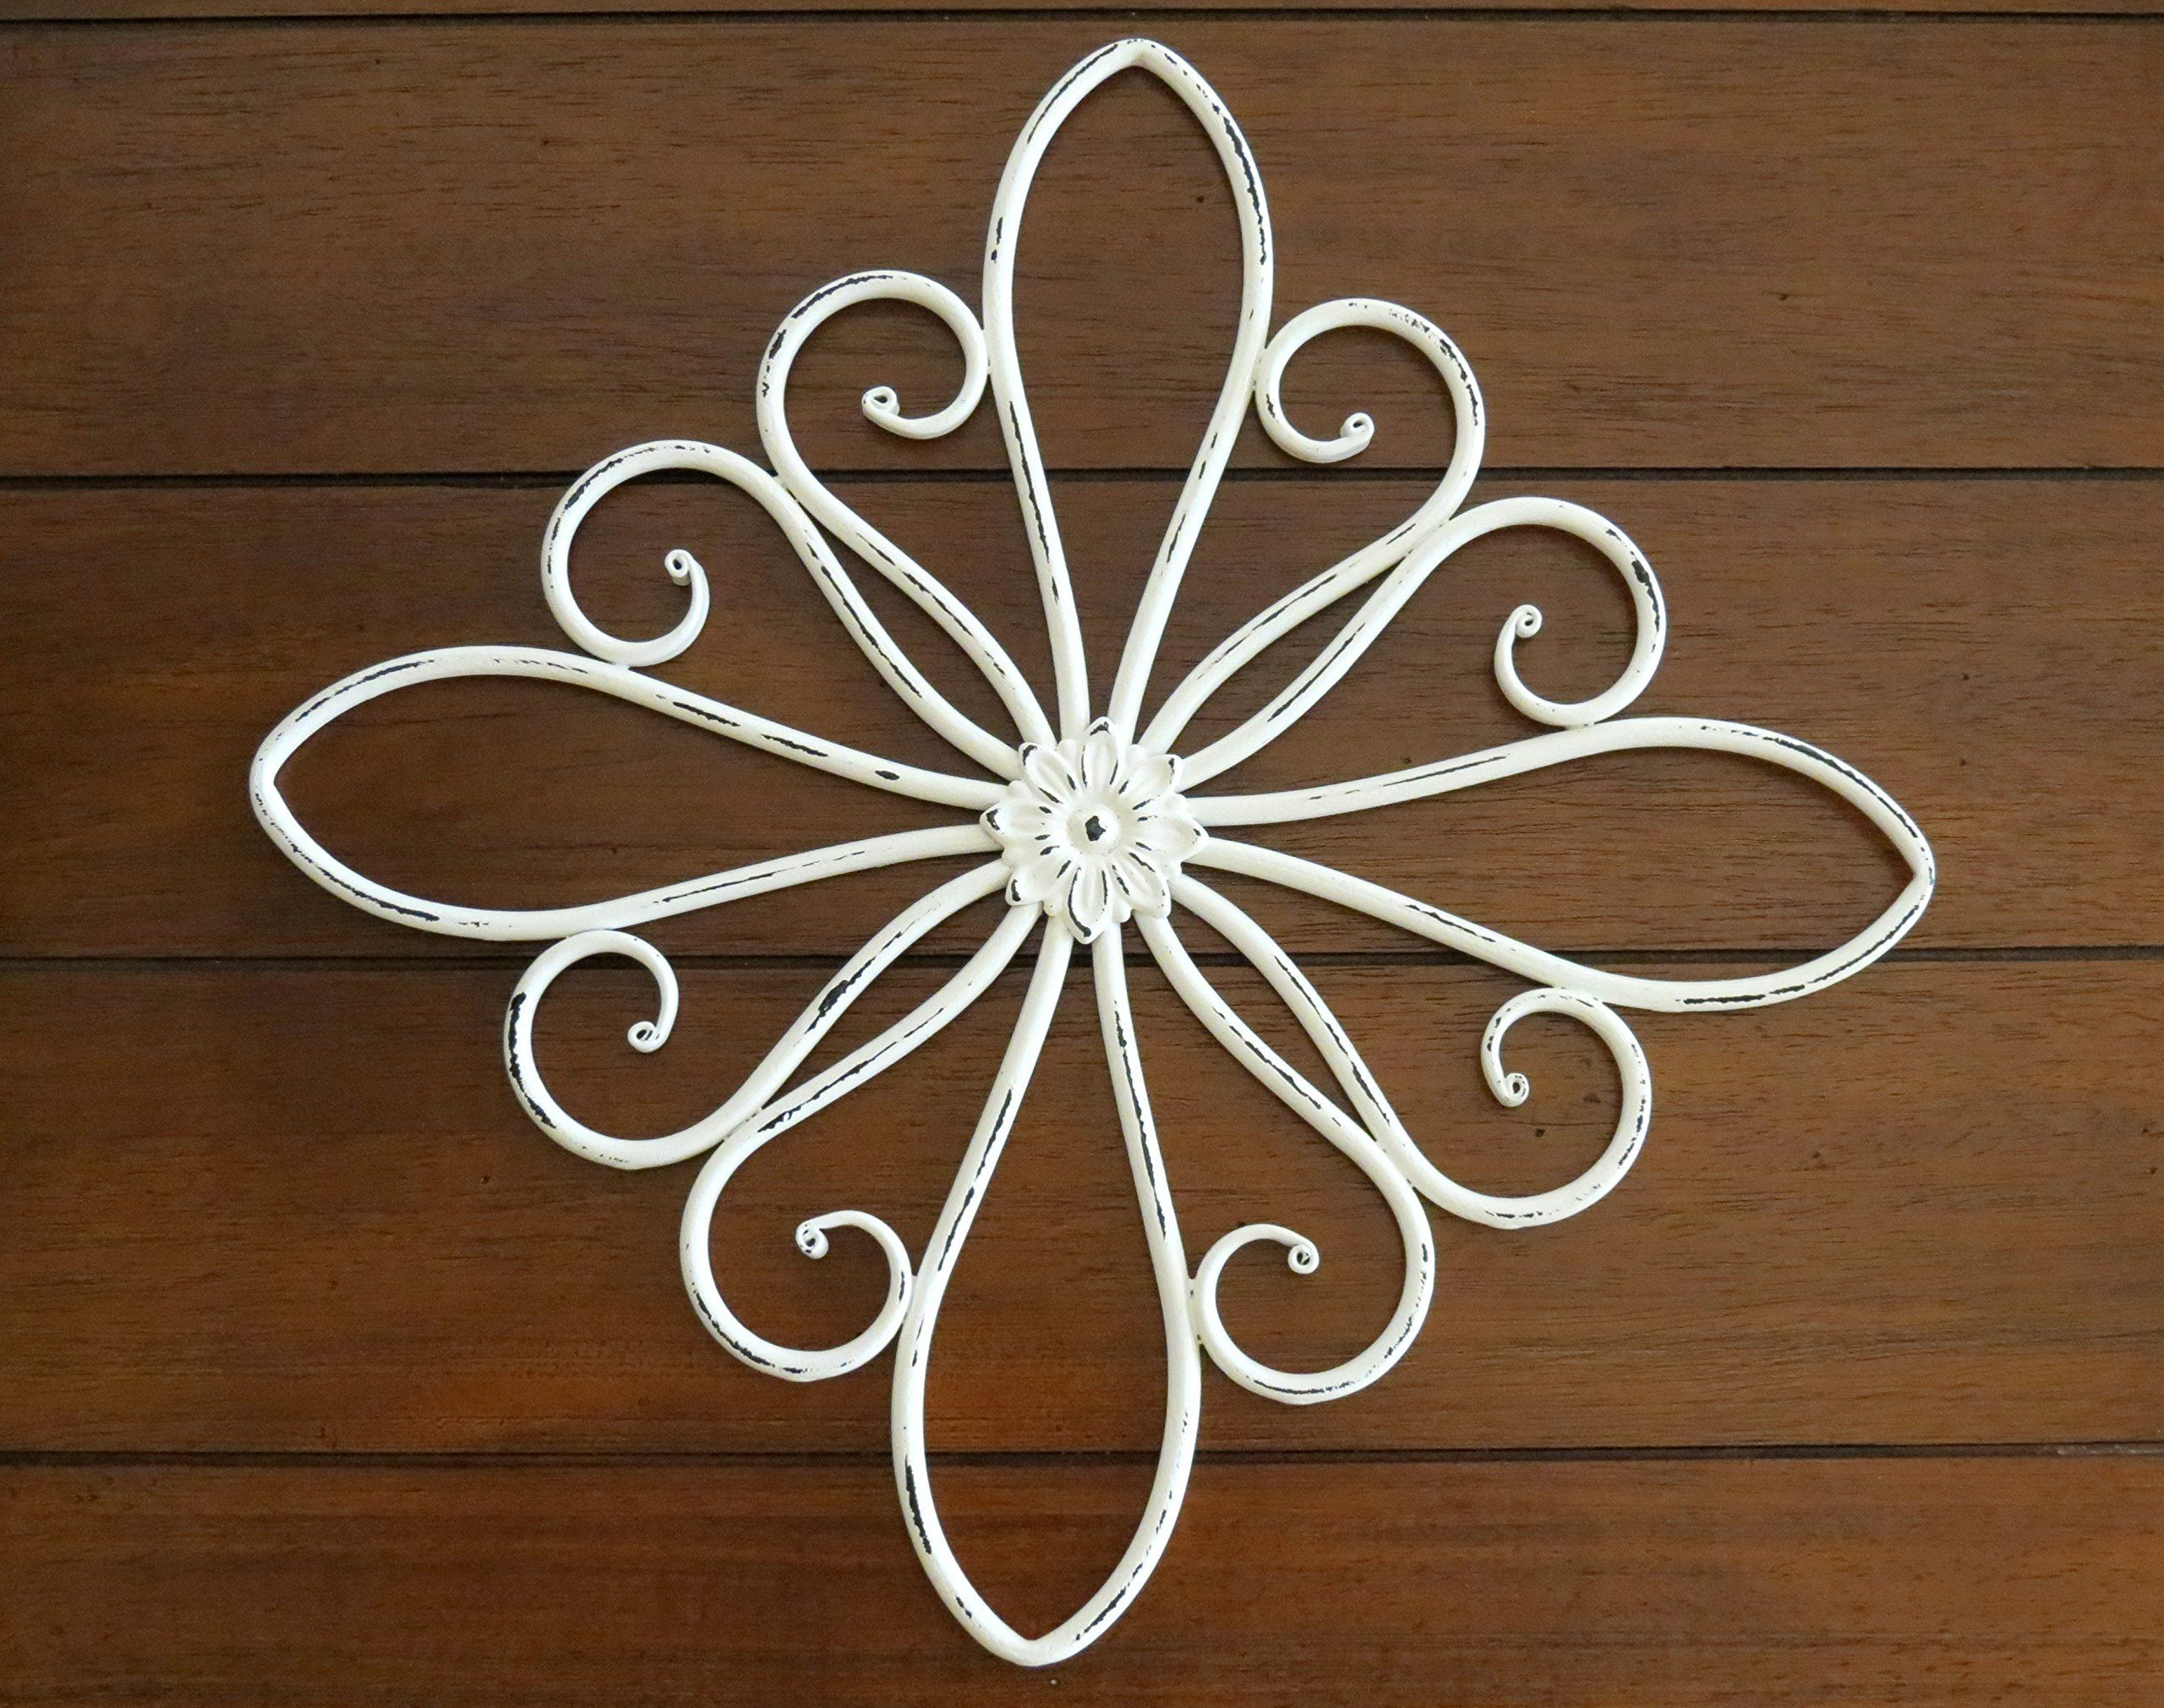 Metal scrolled wall hanging metal wall decor antique white or